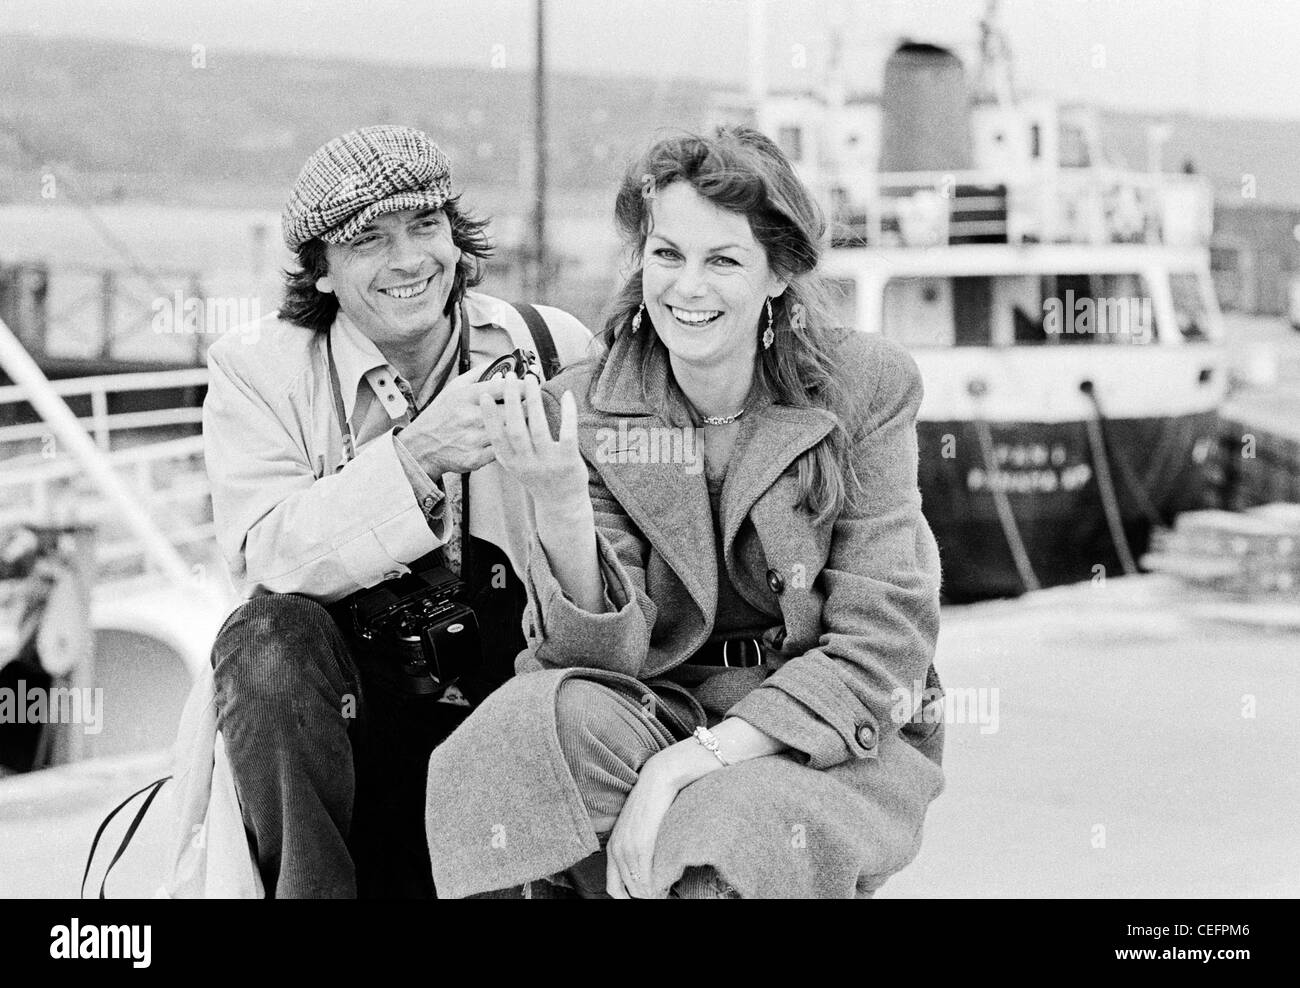 David Bailey And Jean Shrimpton In Cornwall 1982